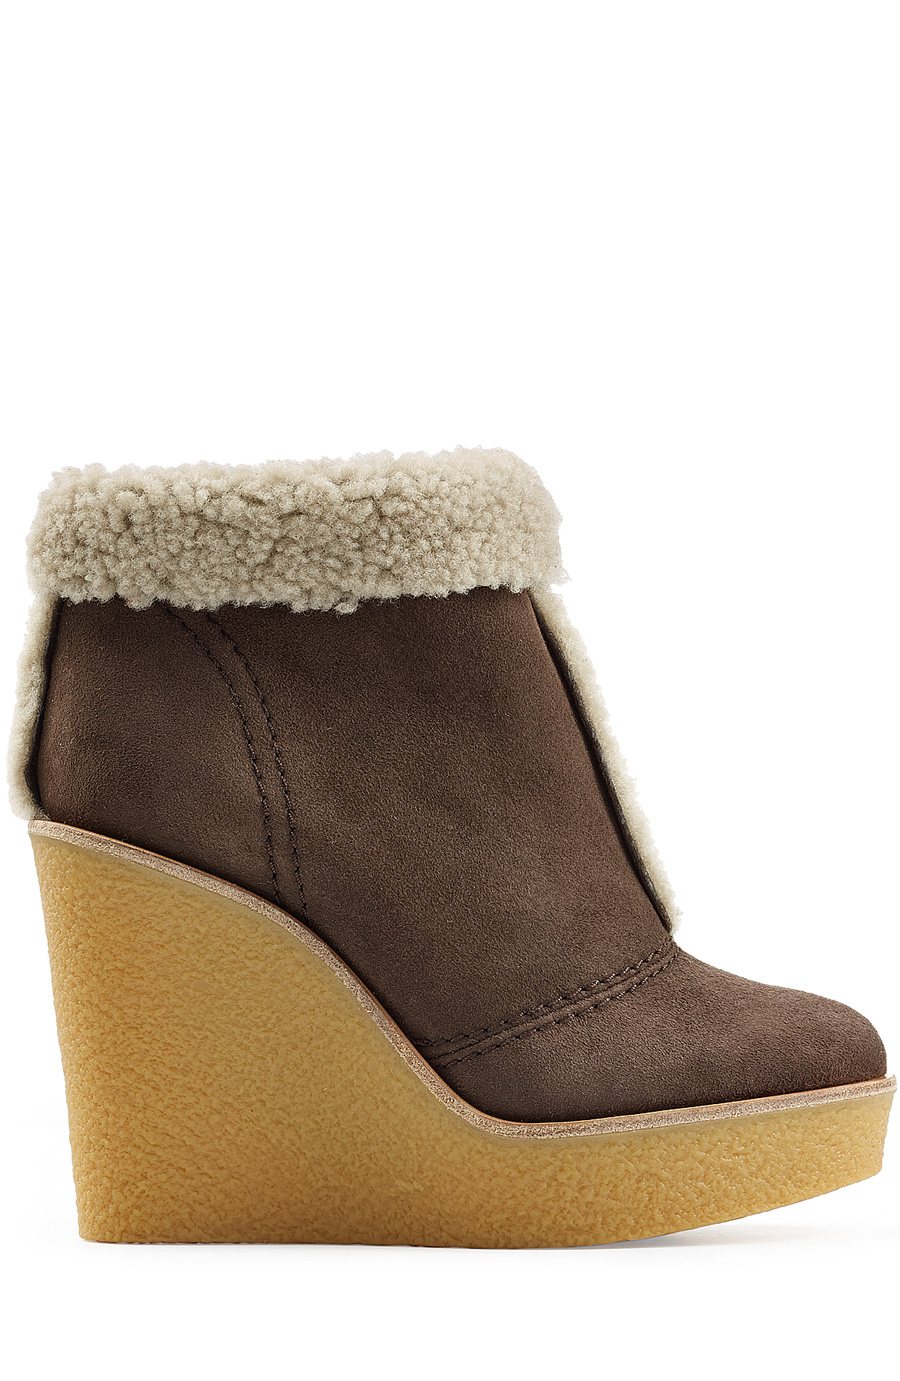 ChloÉ Shearling-Lined Suede Wedge Ankle Boots In Dark Brown